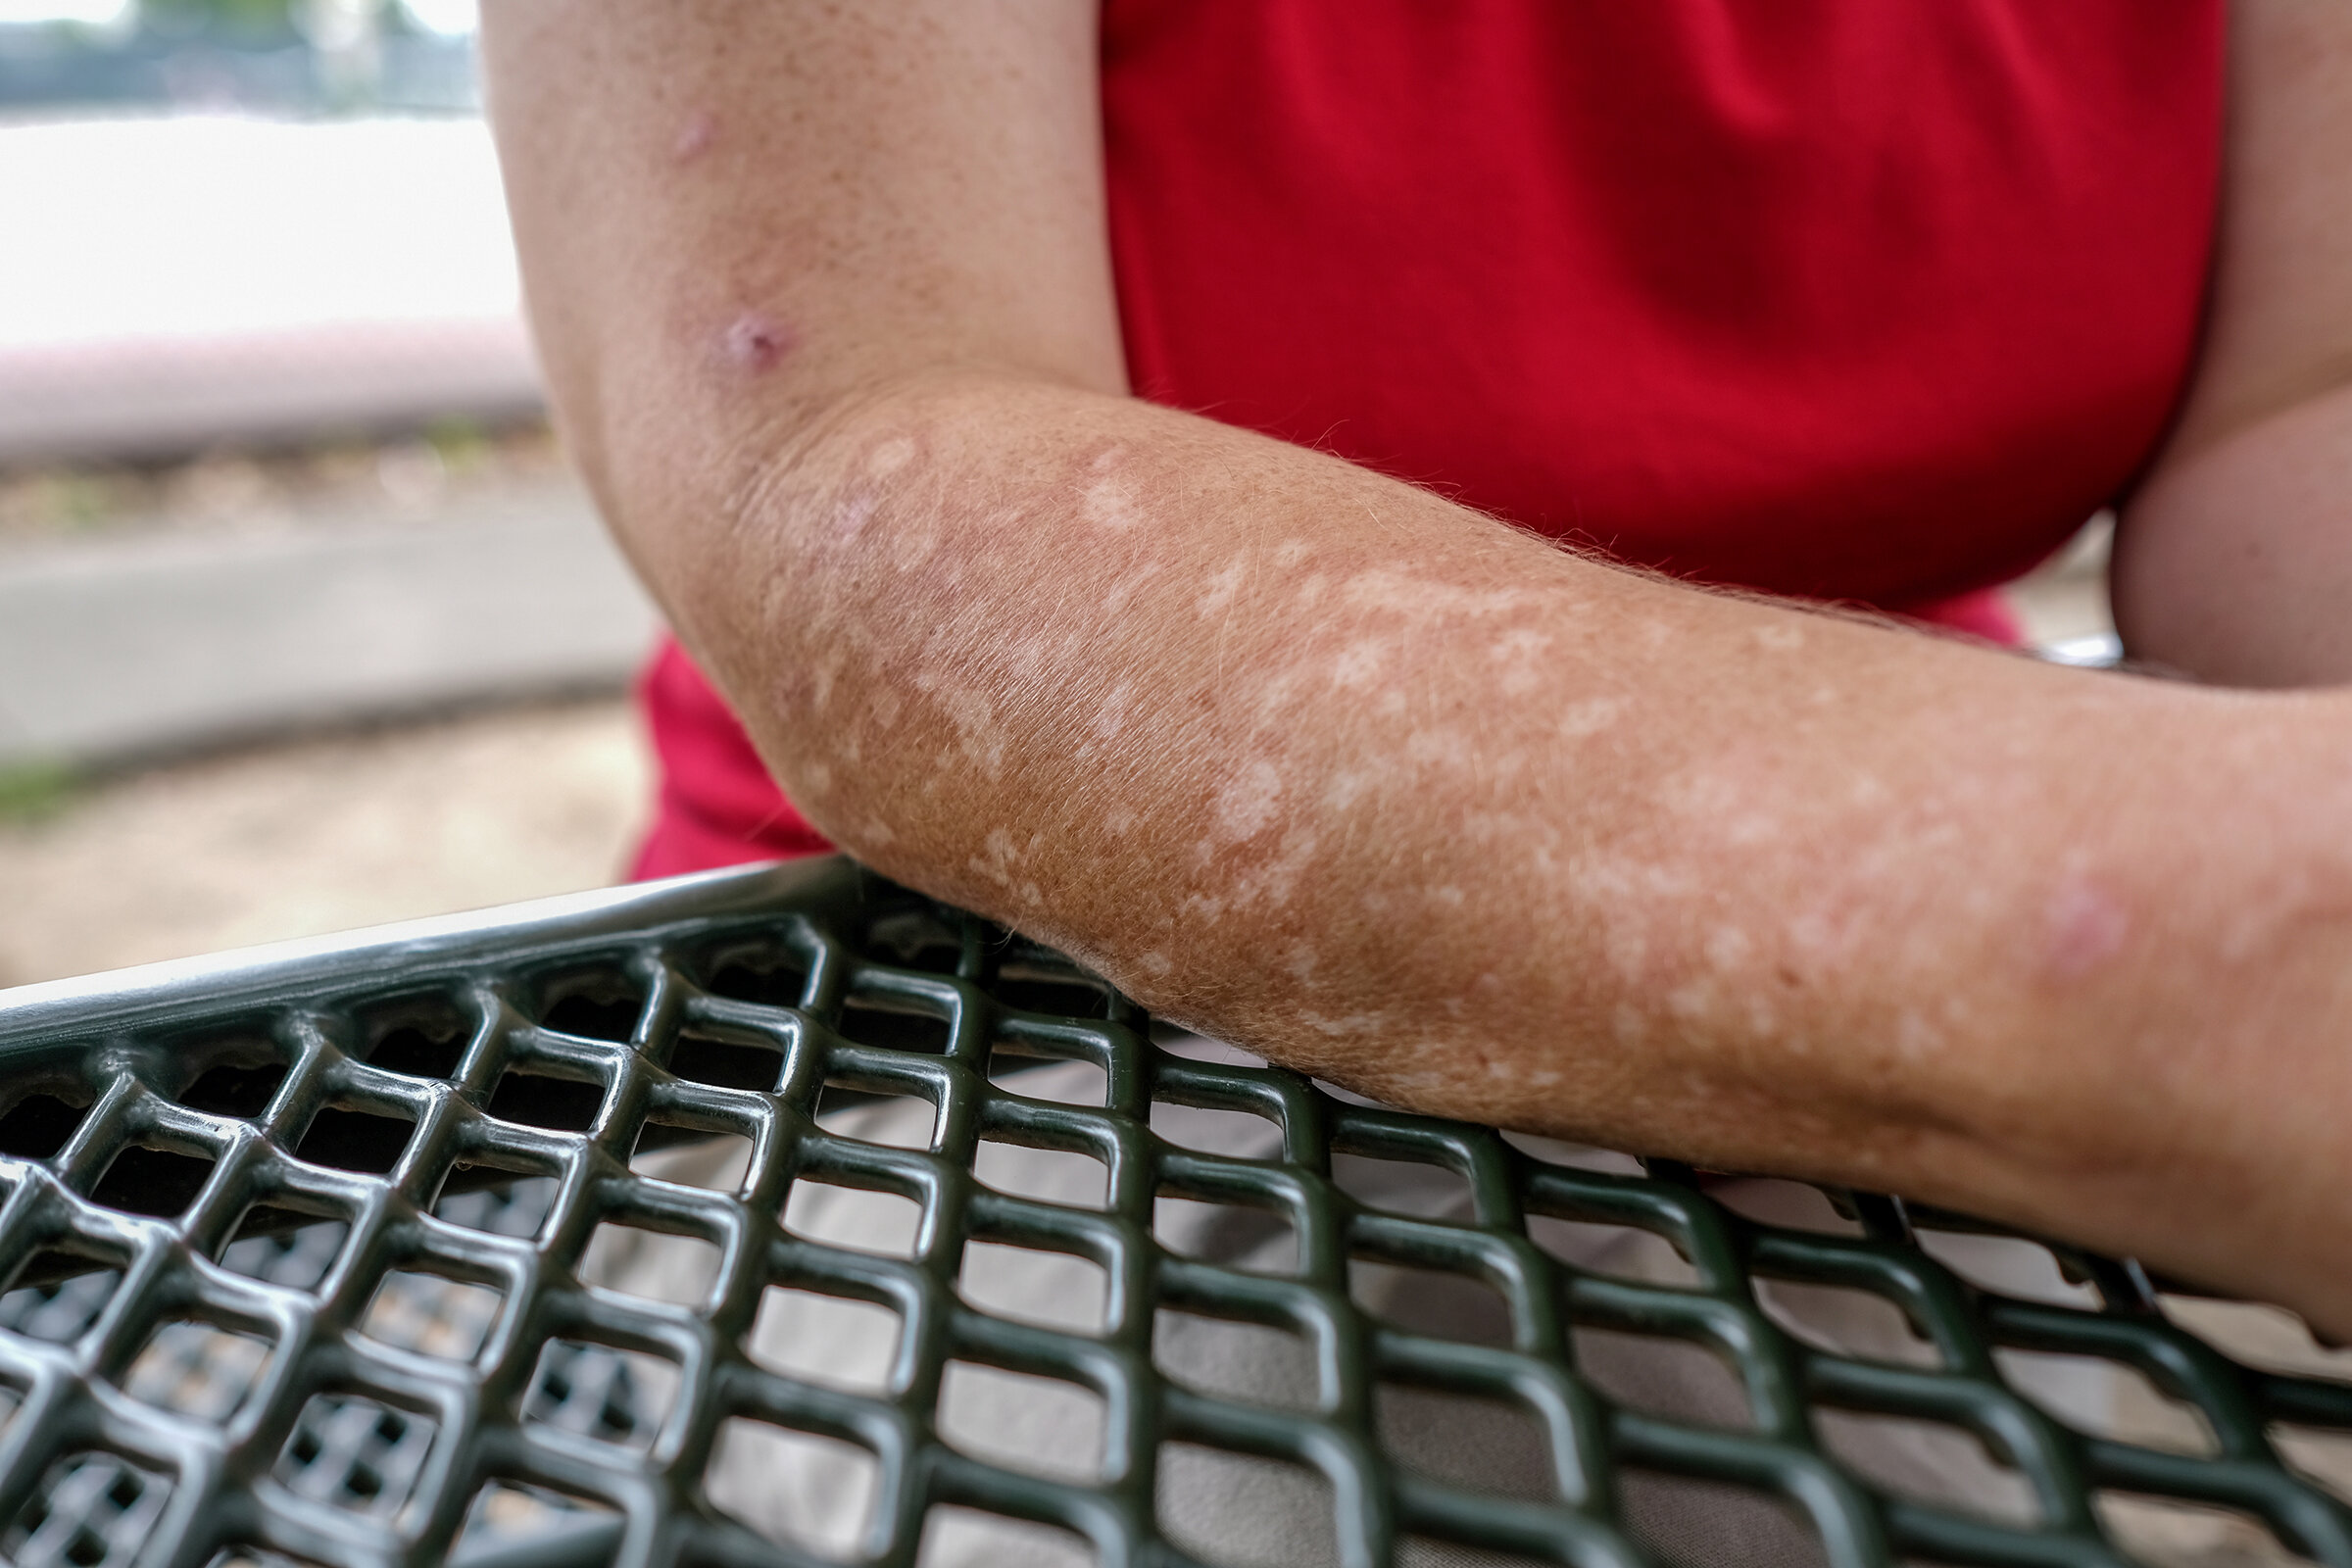 Susan Wright, 51, a Brandon, Miss. resident suffers from excoriation disorder that causes her to pick her skin.   Charles A. Smith/Mississippi Center for Investigative Reporting